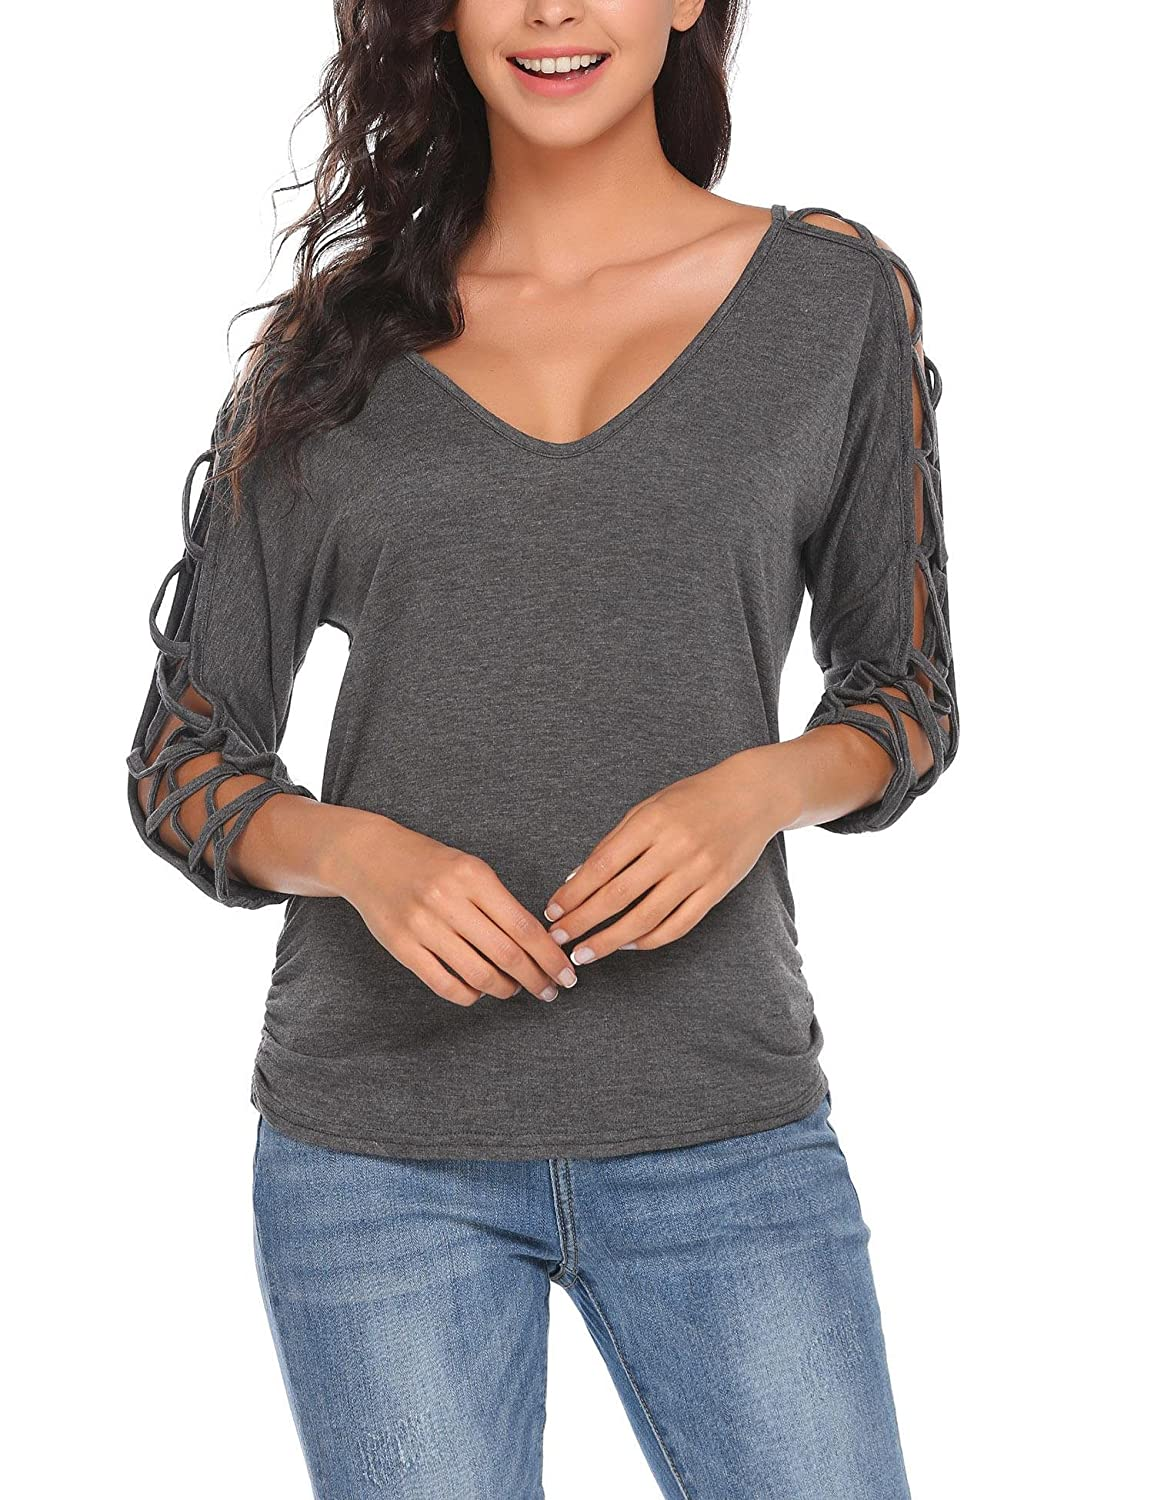 ELESOL Women V Neck Cut Out Shirts 3//4 Sleeve Cold Shoulder Open Back Blouse Tops S-XXL